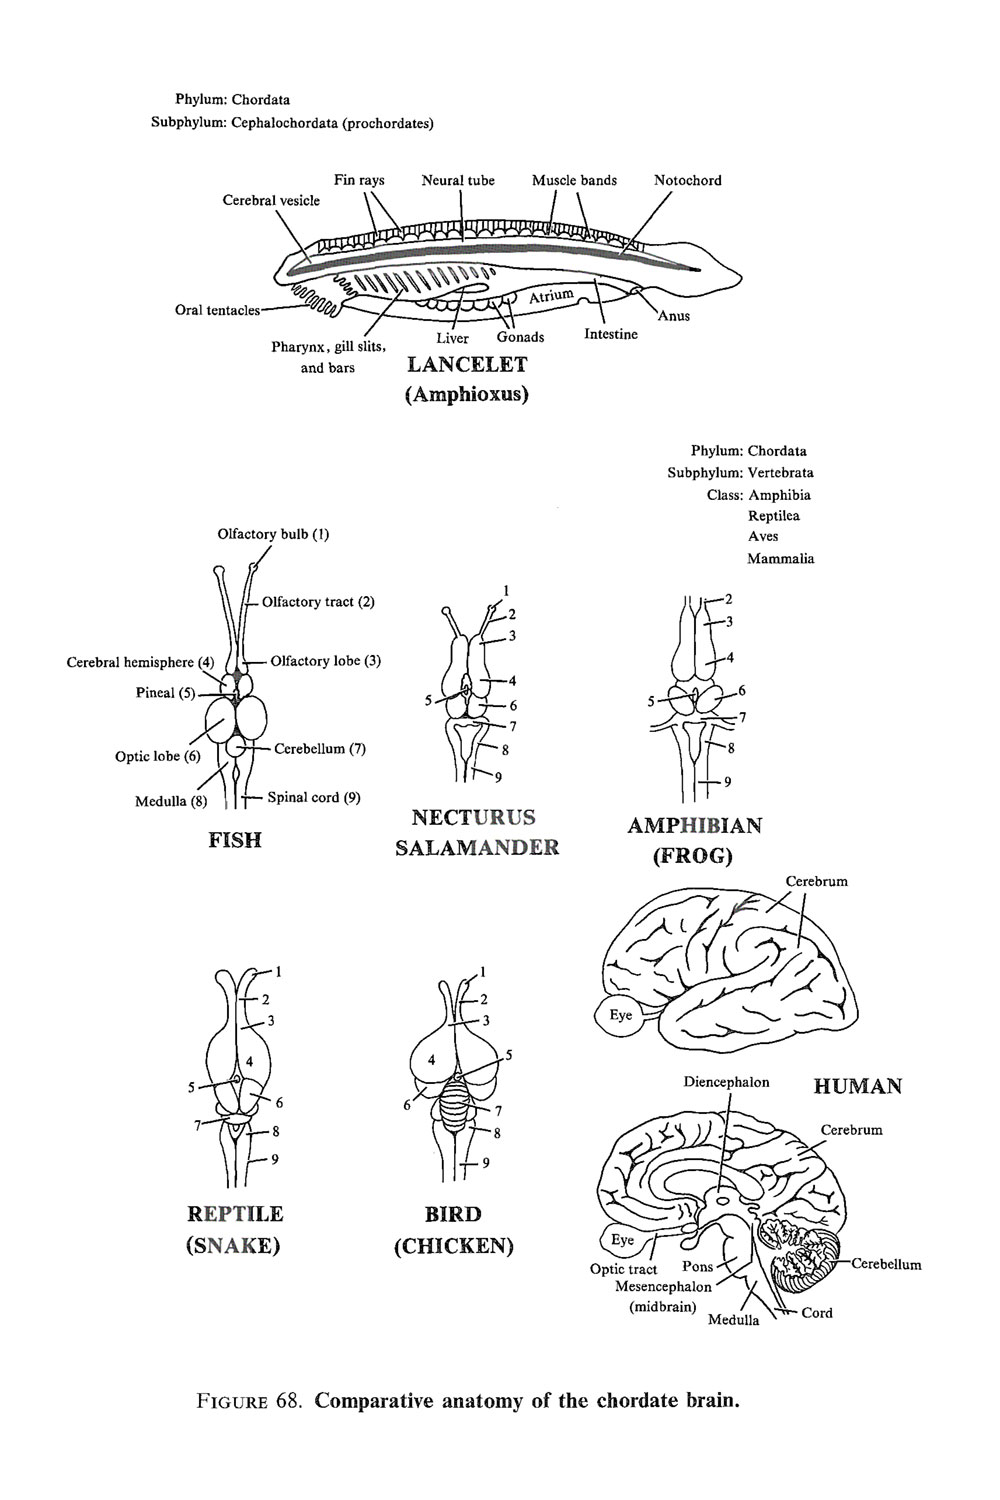 phylogenesis of the nervous system: image #3